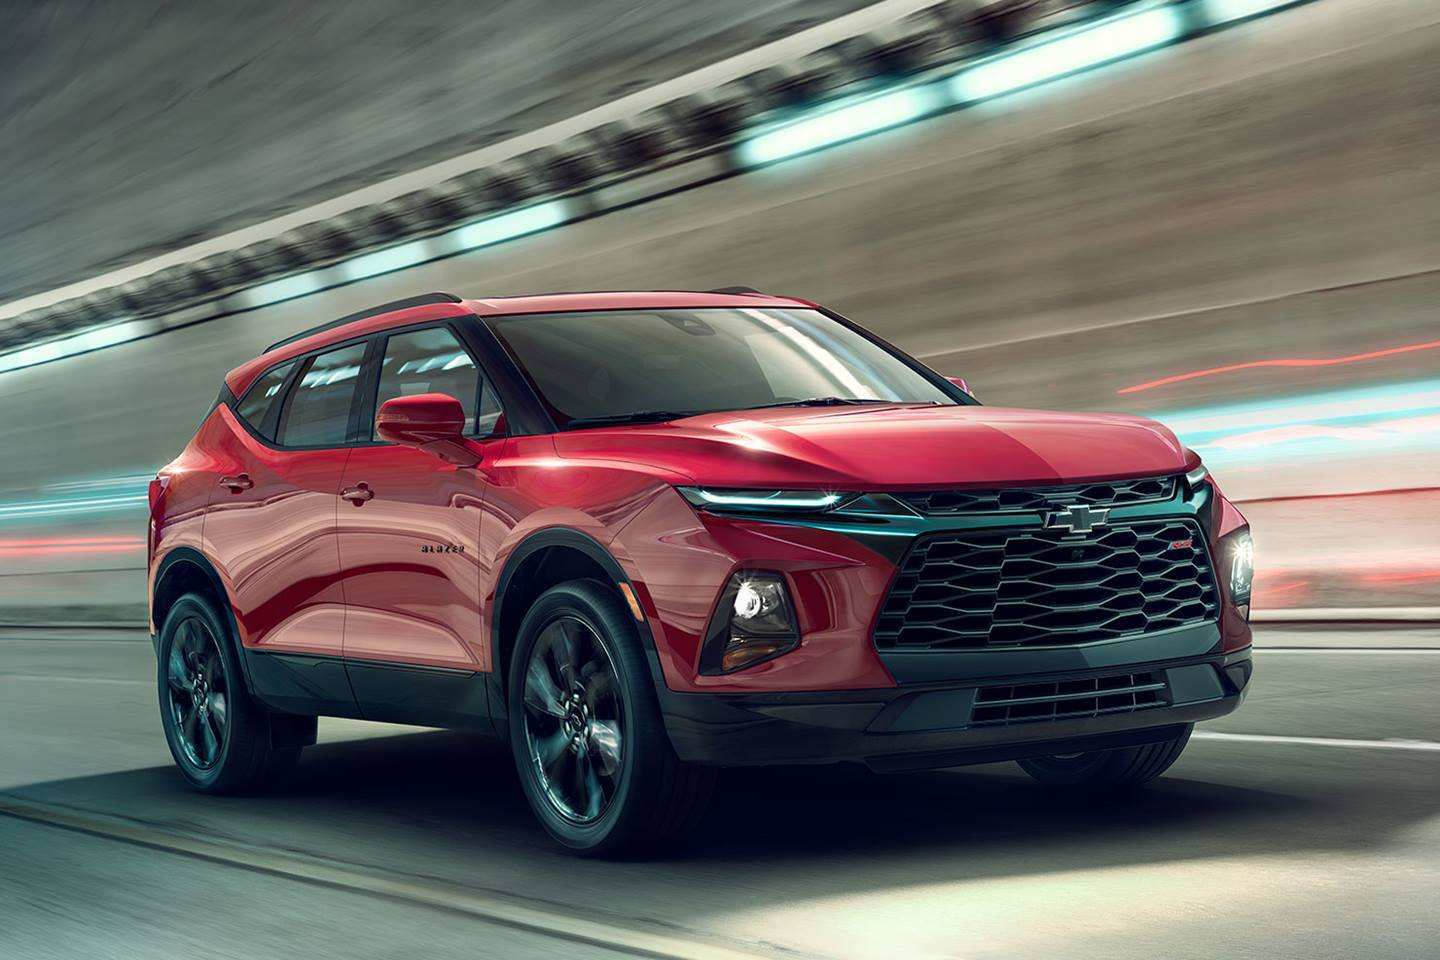 88 A 2019 Chevy Trailblazer Exterior And Interior